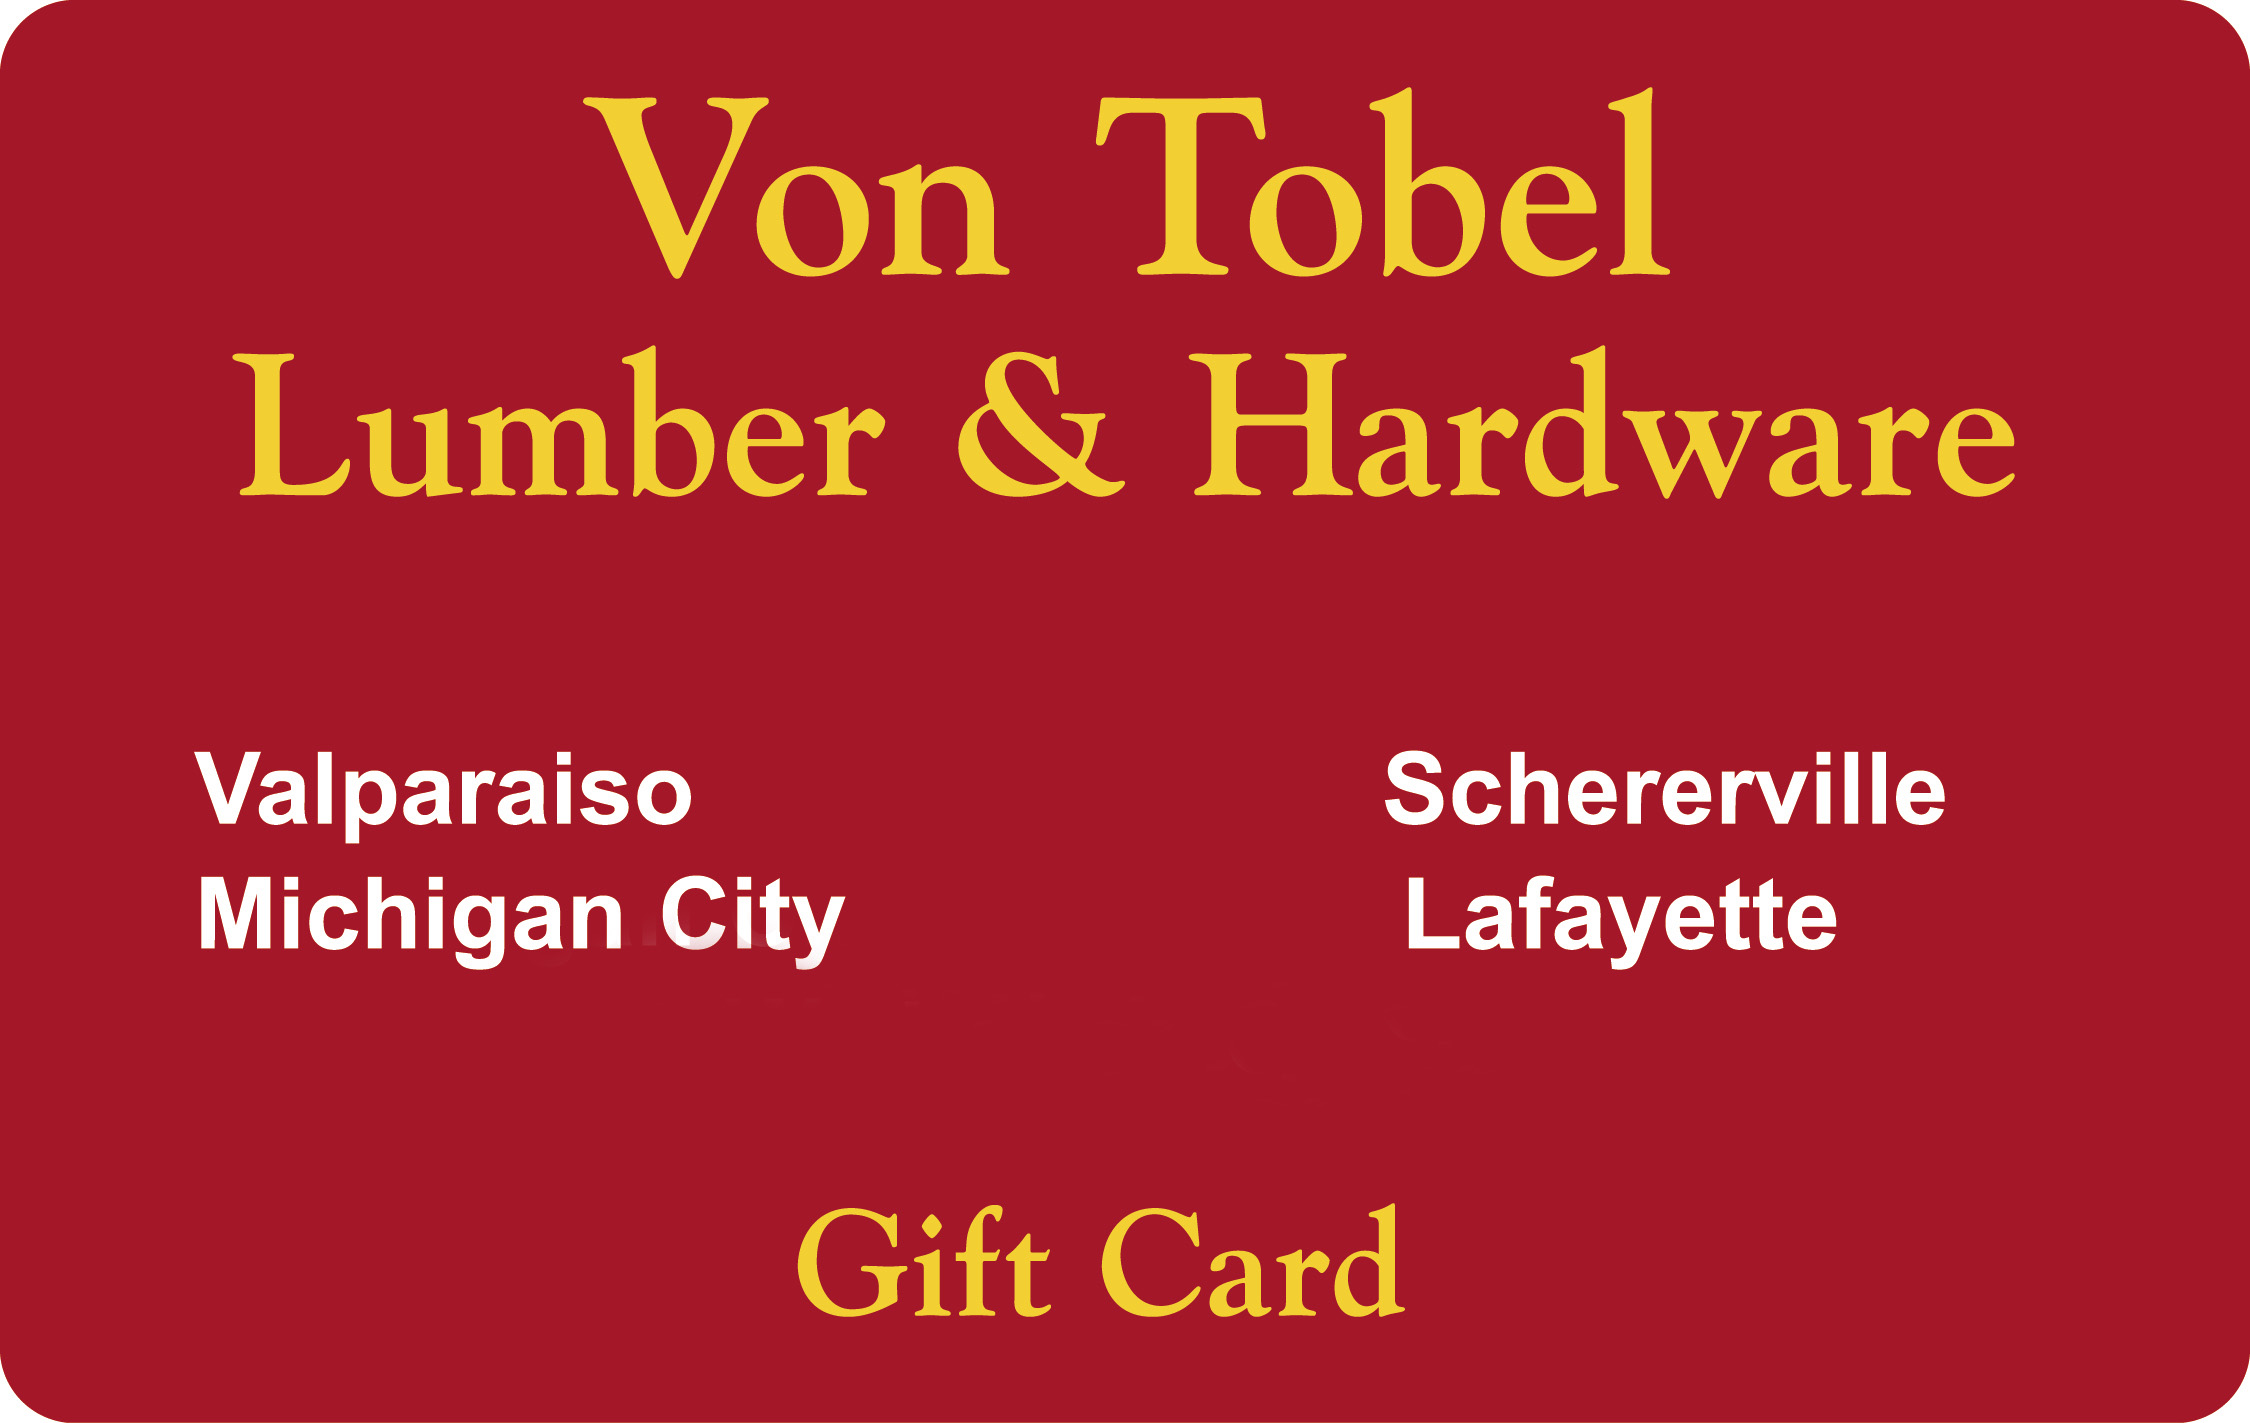 Image of Von Tobel Gift Card